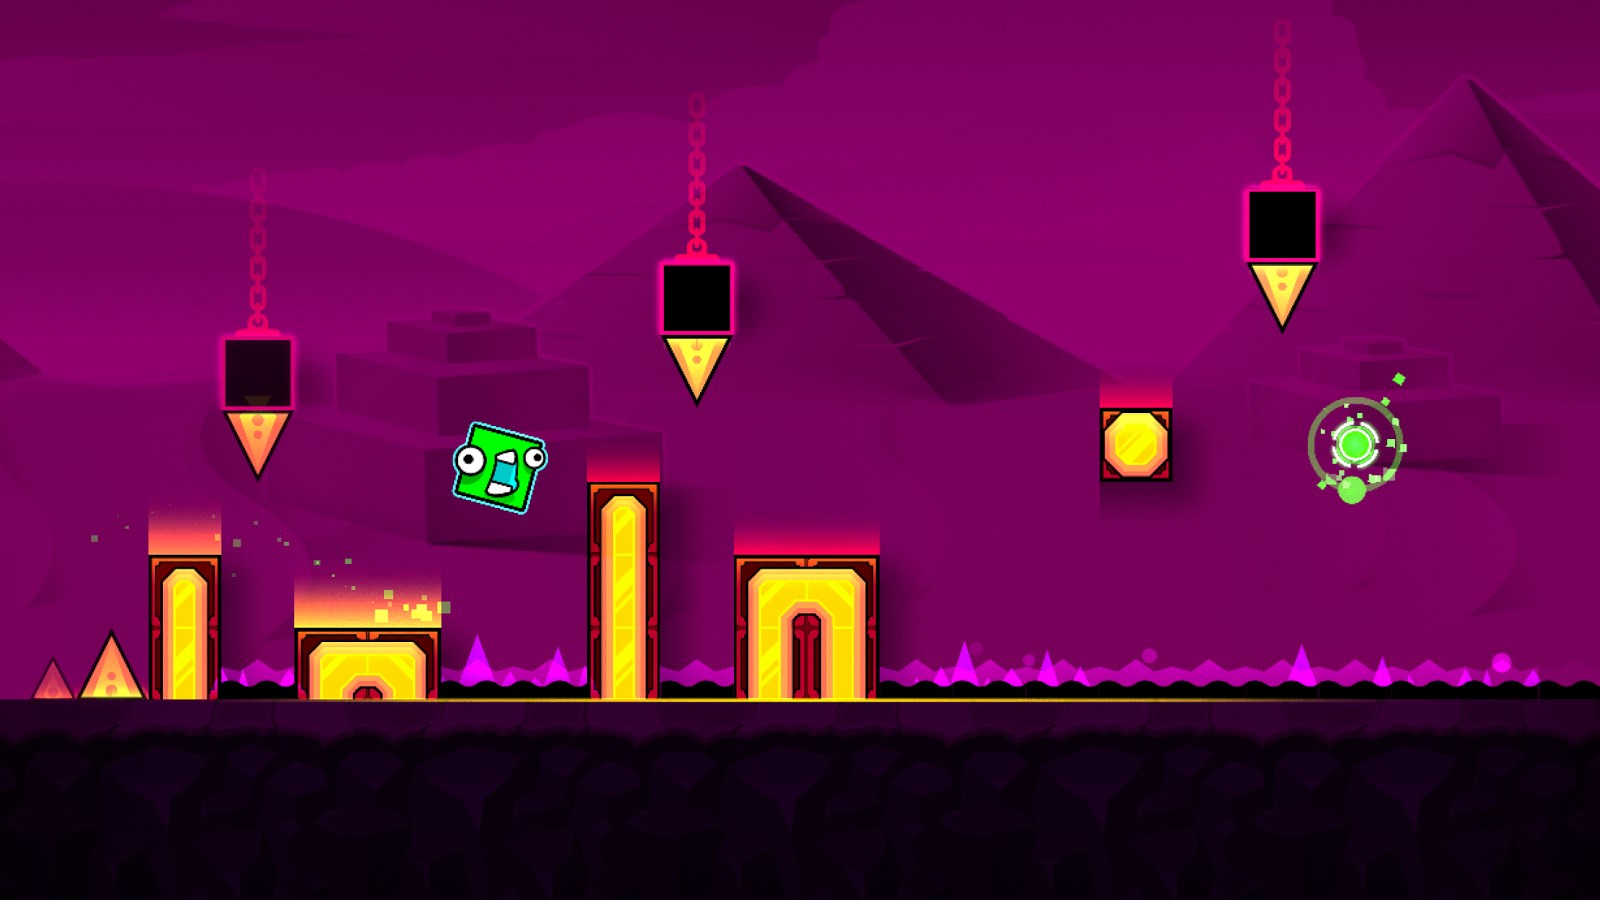 Geometry Dash SubZero - Imagem 1 do software